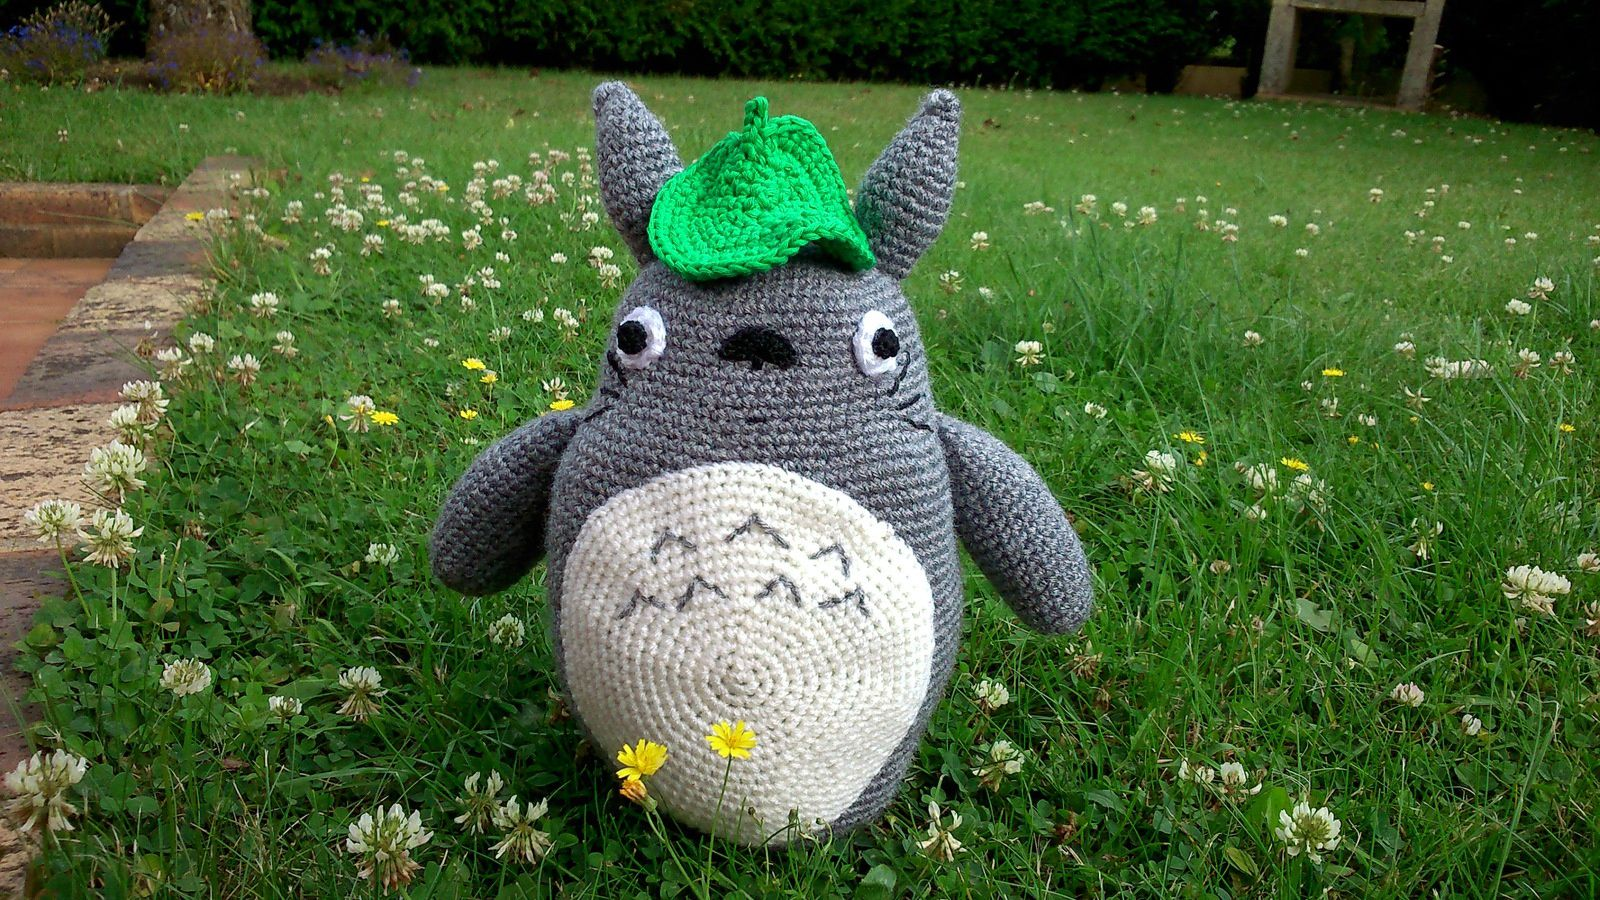 Amigurumi Tuto Totoro : Amigurumi Totoro - titellecreations.over-blog.com